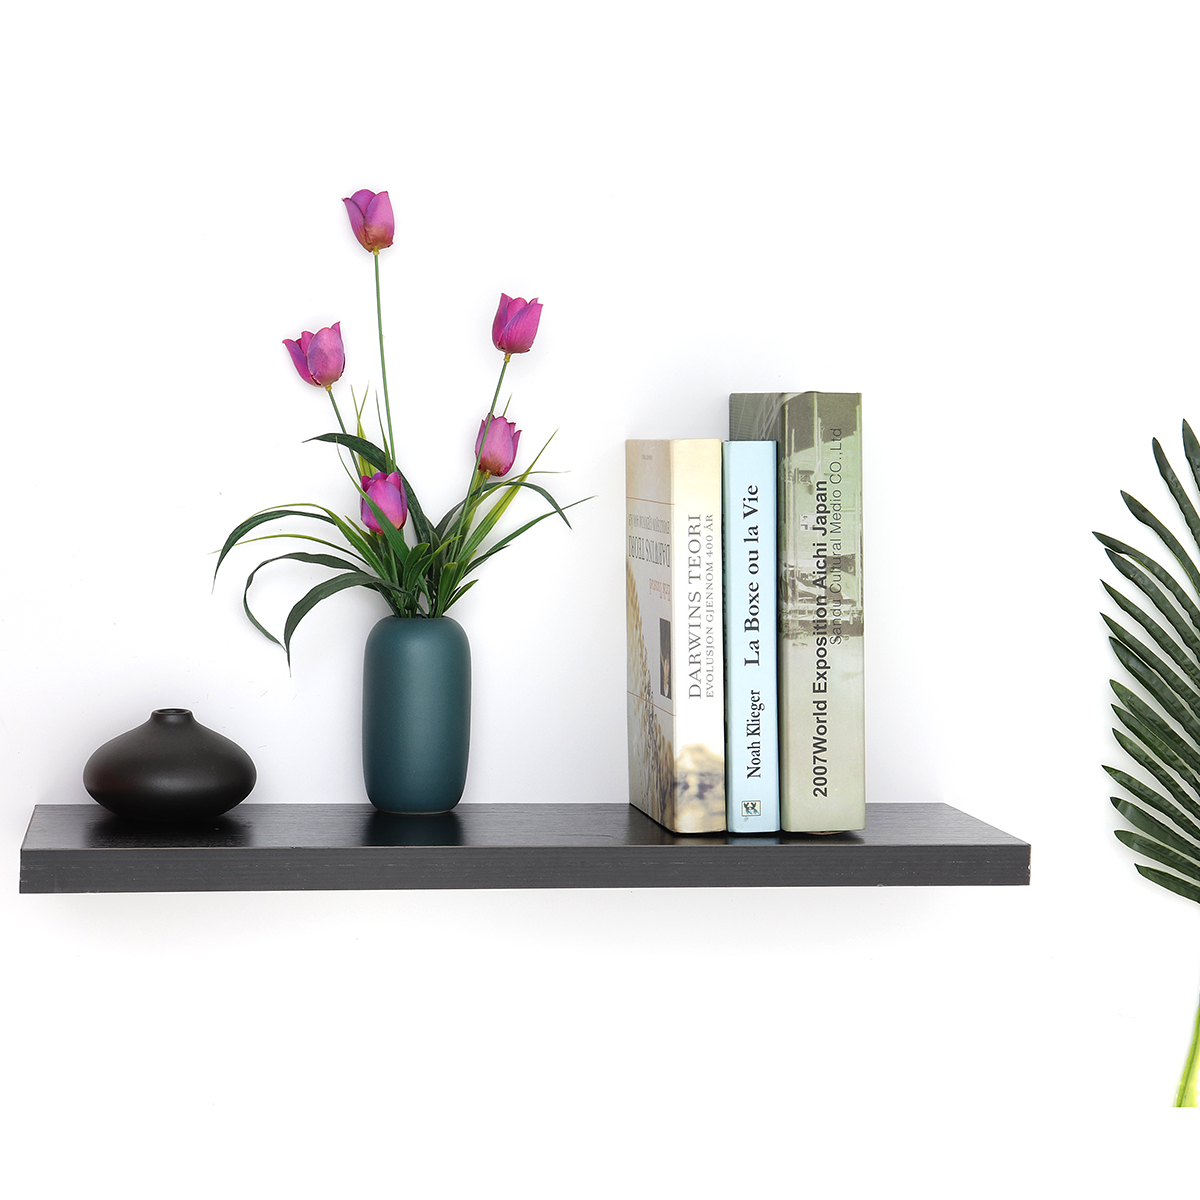 Rectangle Bookcases Shelf Solid Wood Storage Rack Wall-hung Decorative Book Shelves For Living Room Decor Sundries Organizer